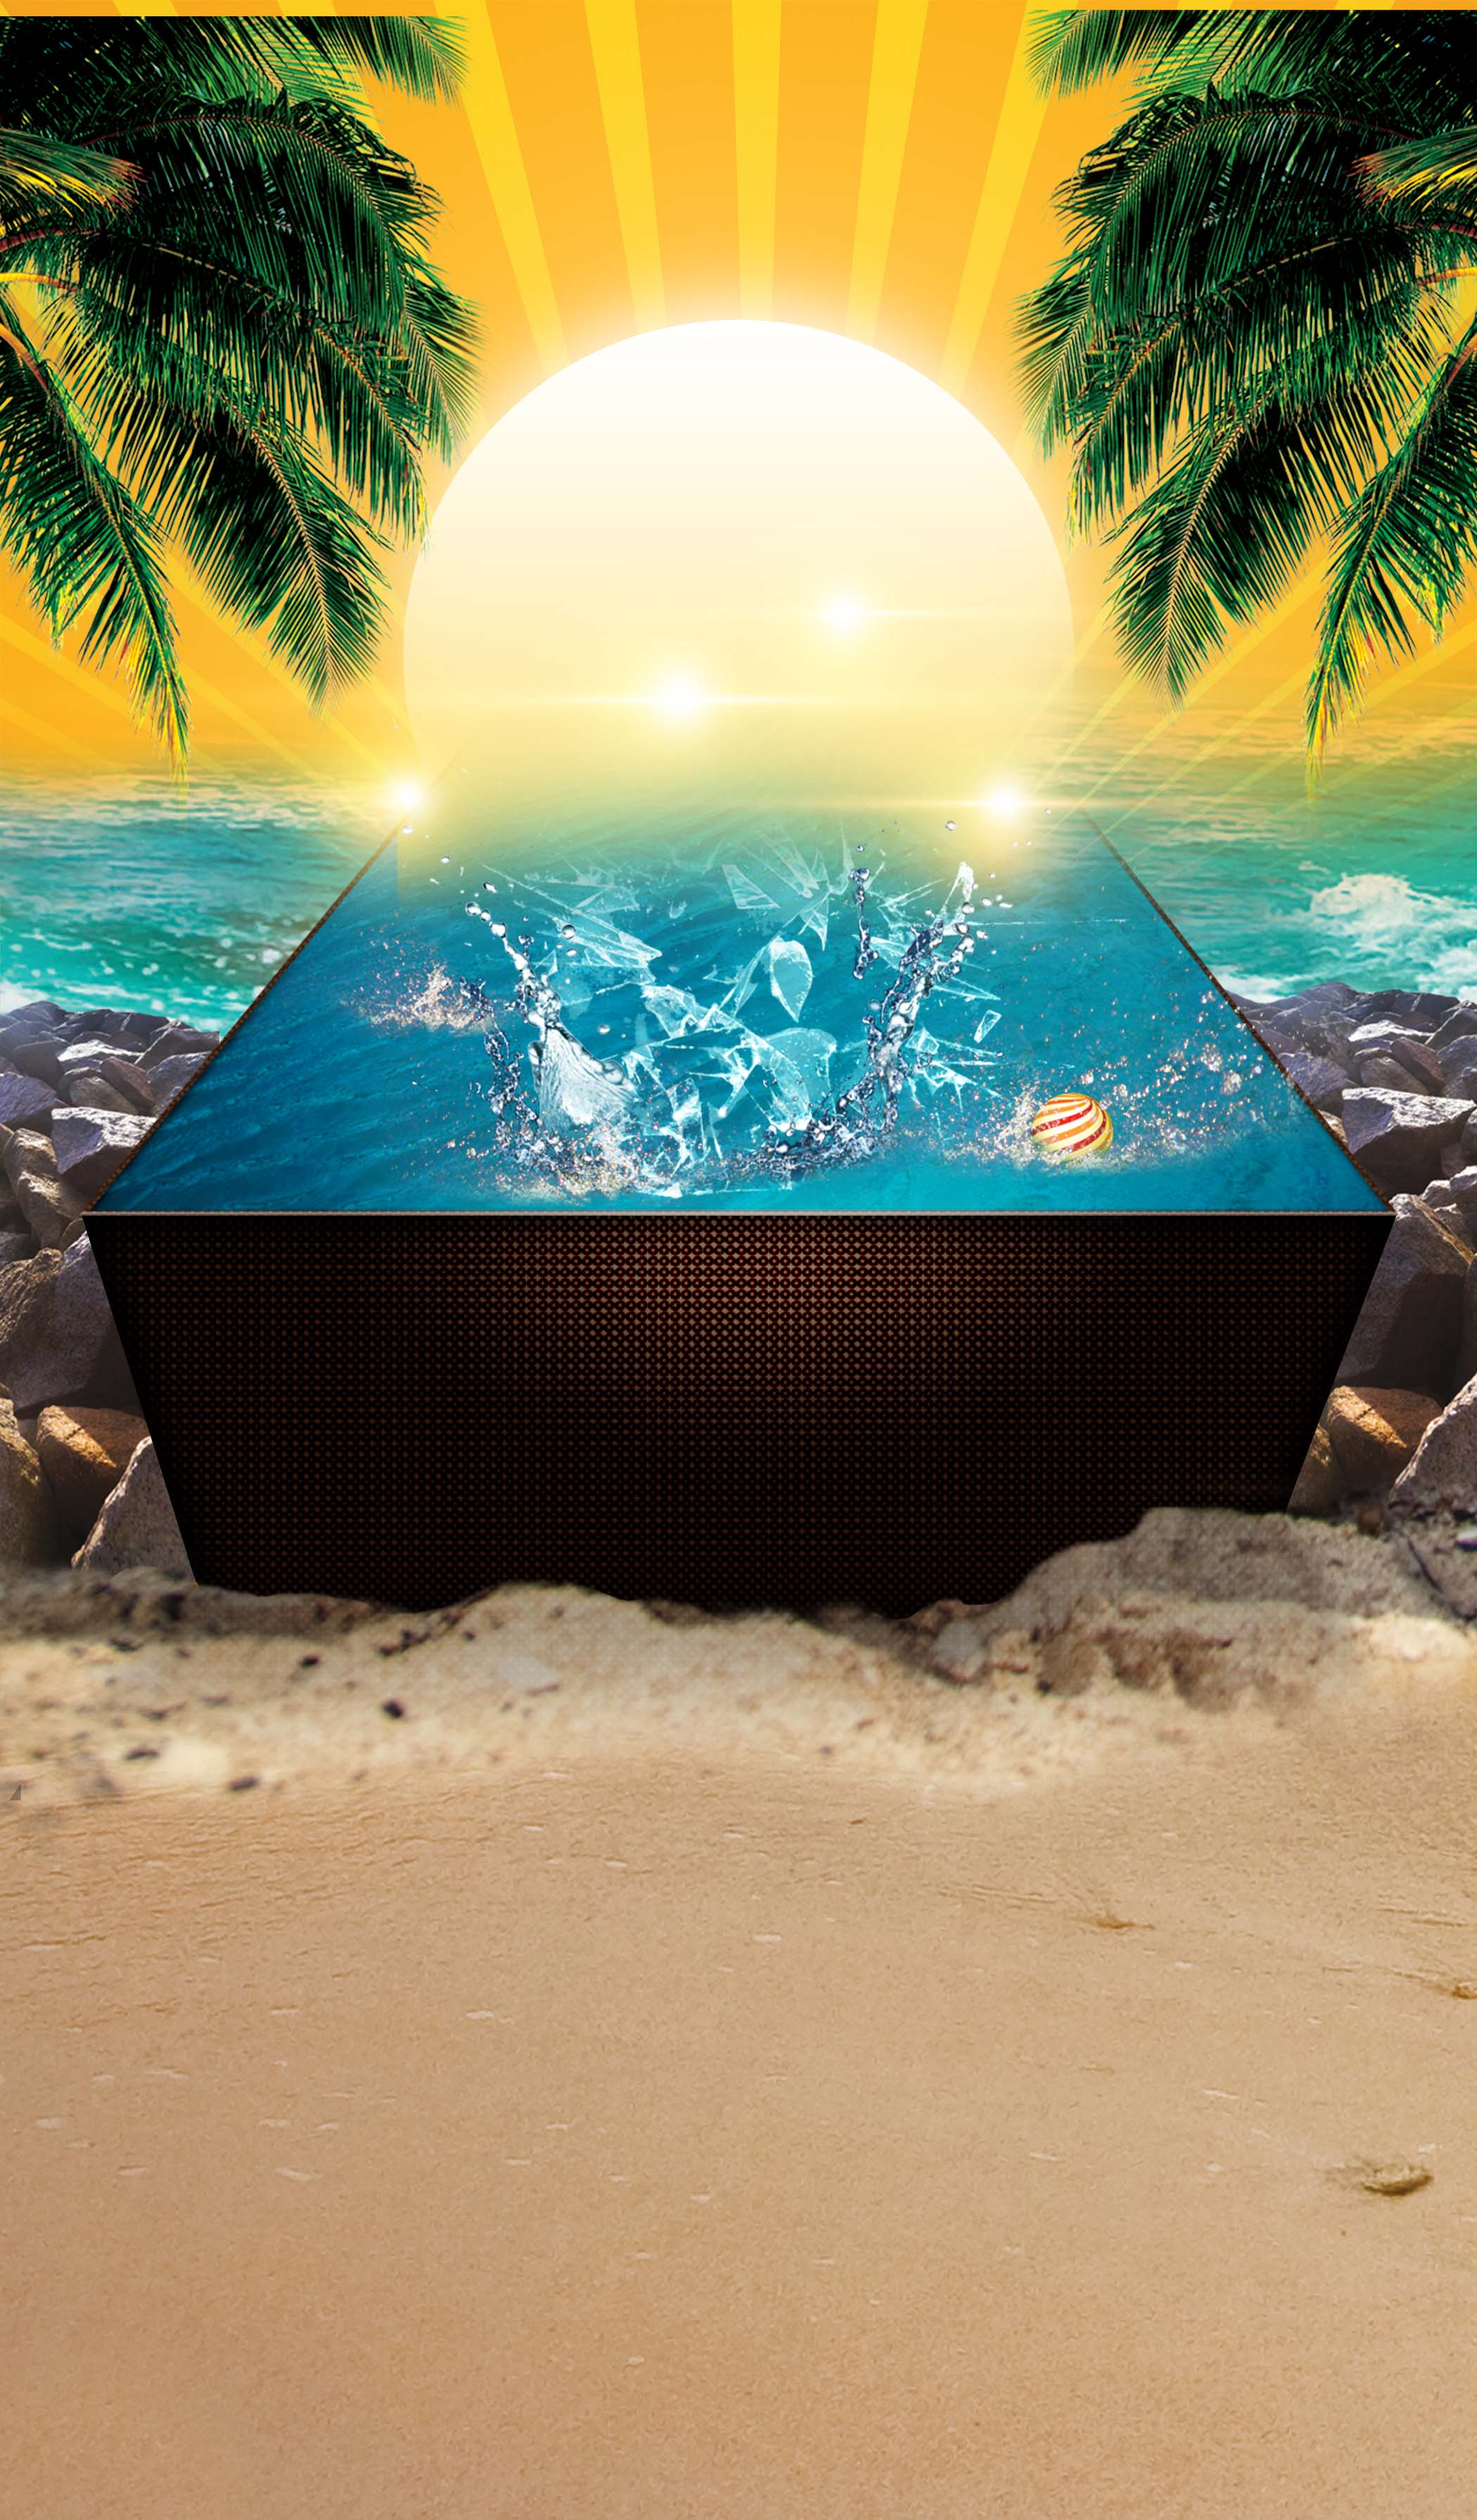 dream beach pool party poster  poster  sun  ocean